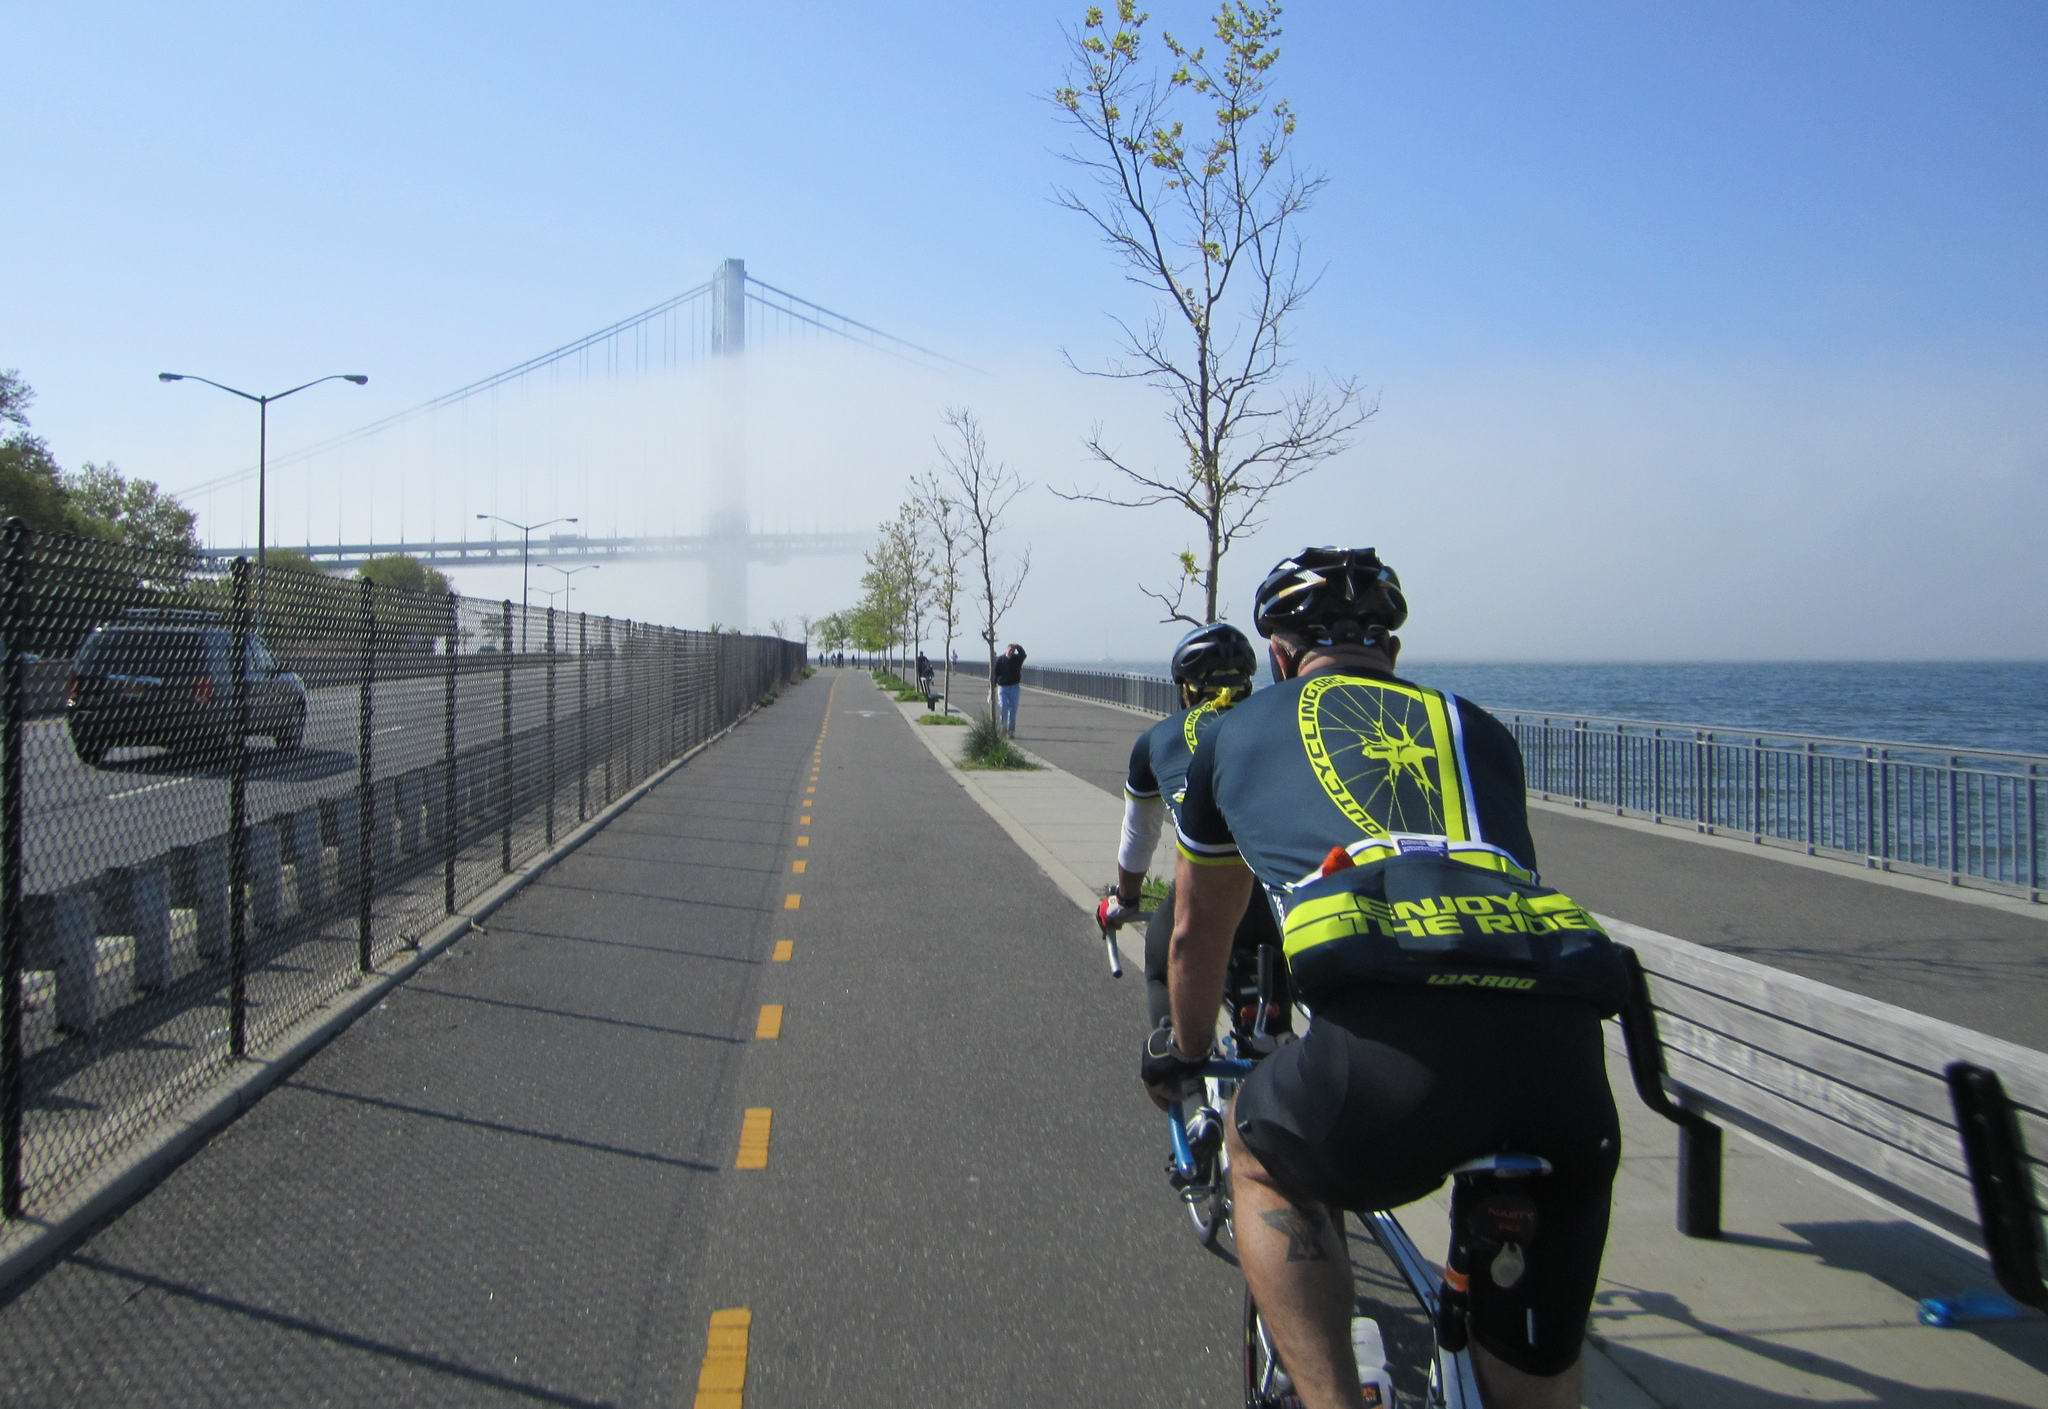 Bikers with the Verrazano Bridge in the background